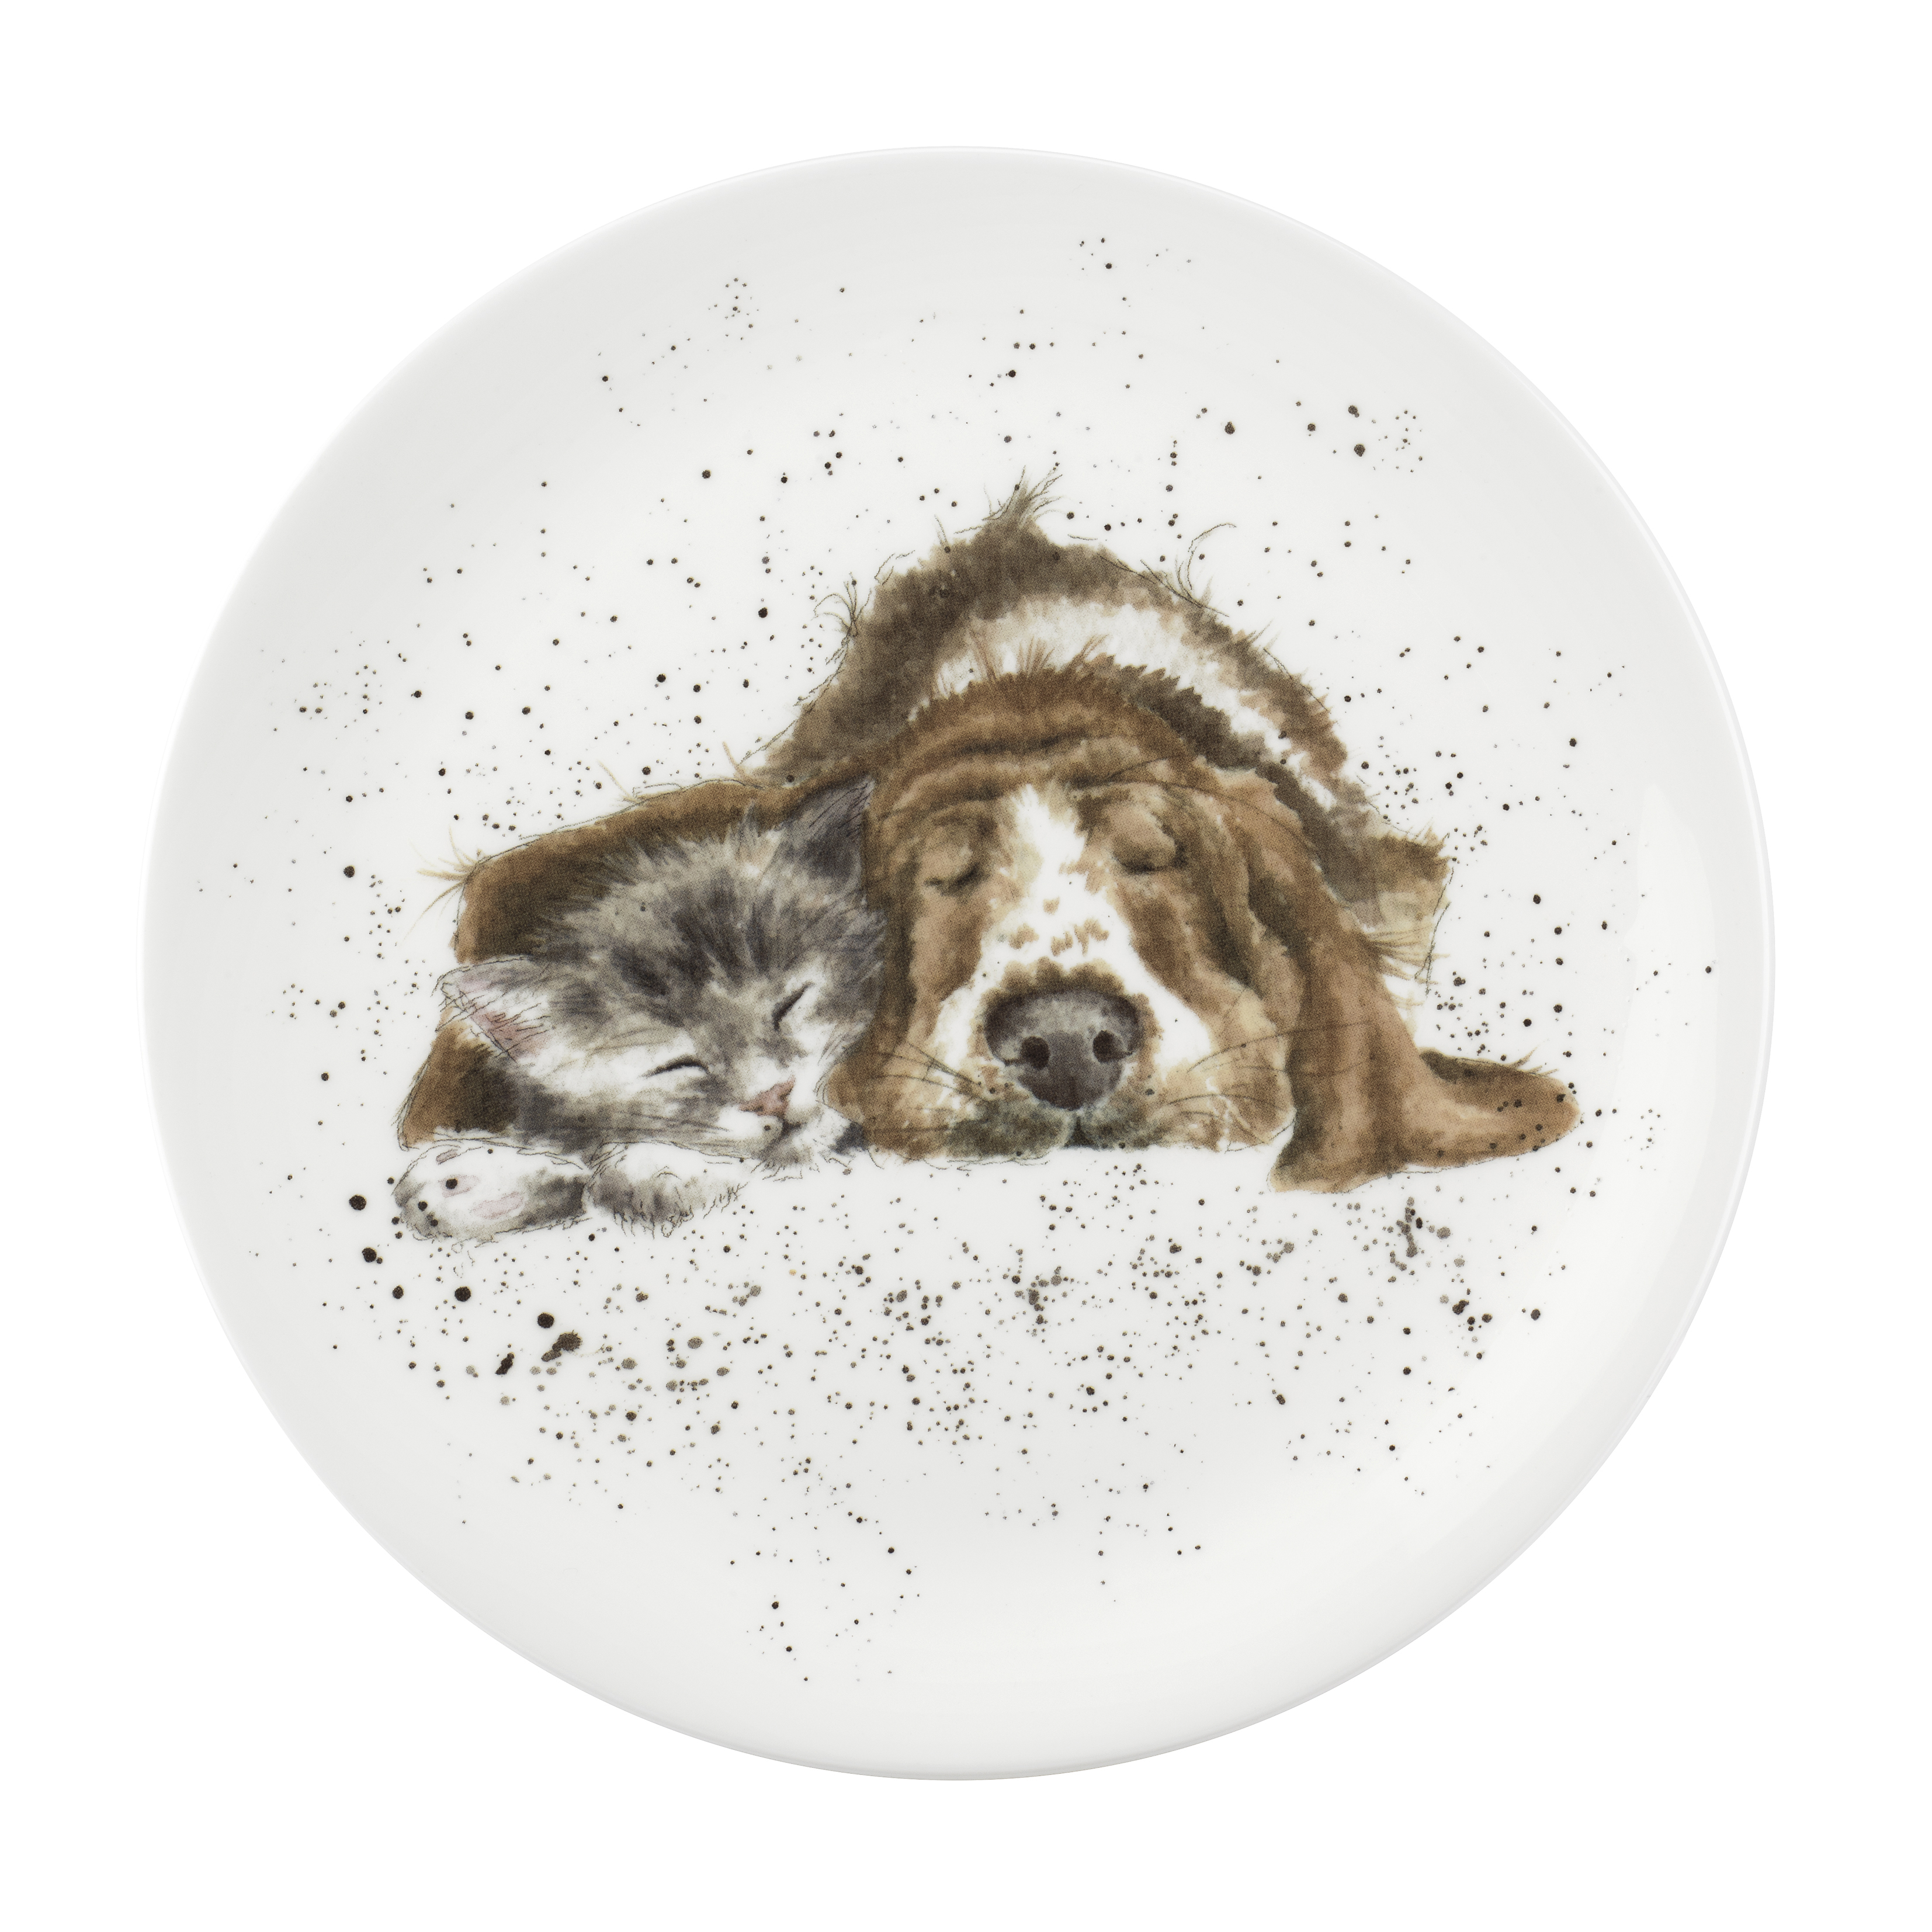 Royal Worcester Wrendale Designs Dog & Catnap 8 Inch Coupe Plate image number 0